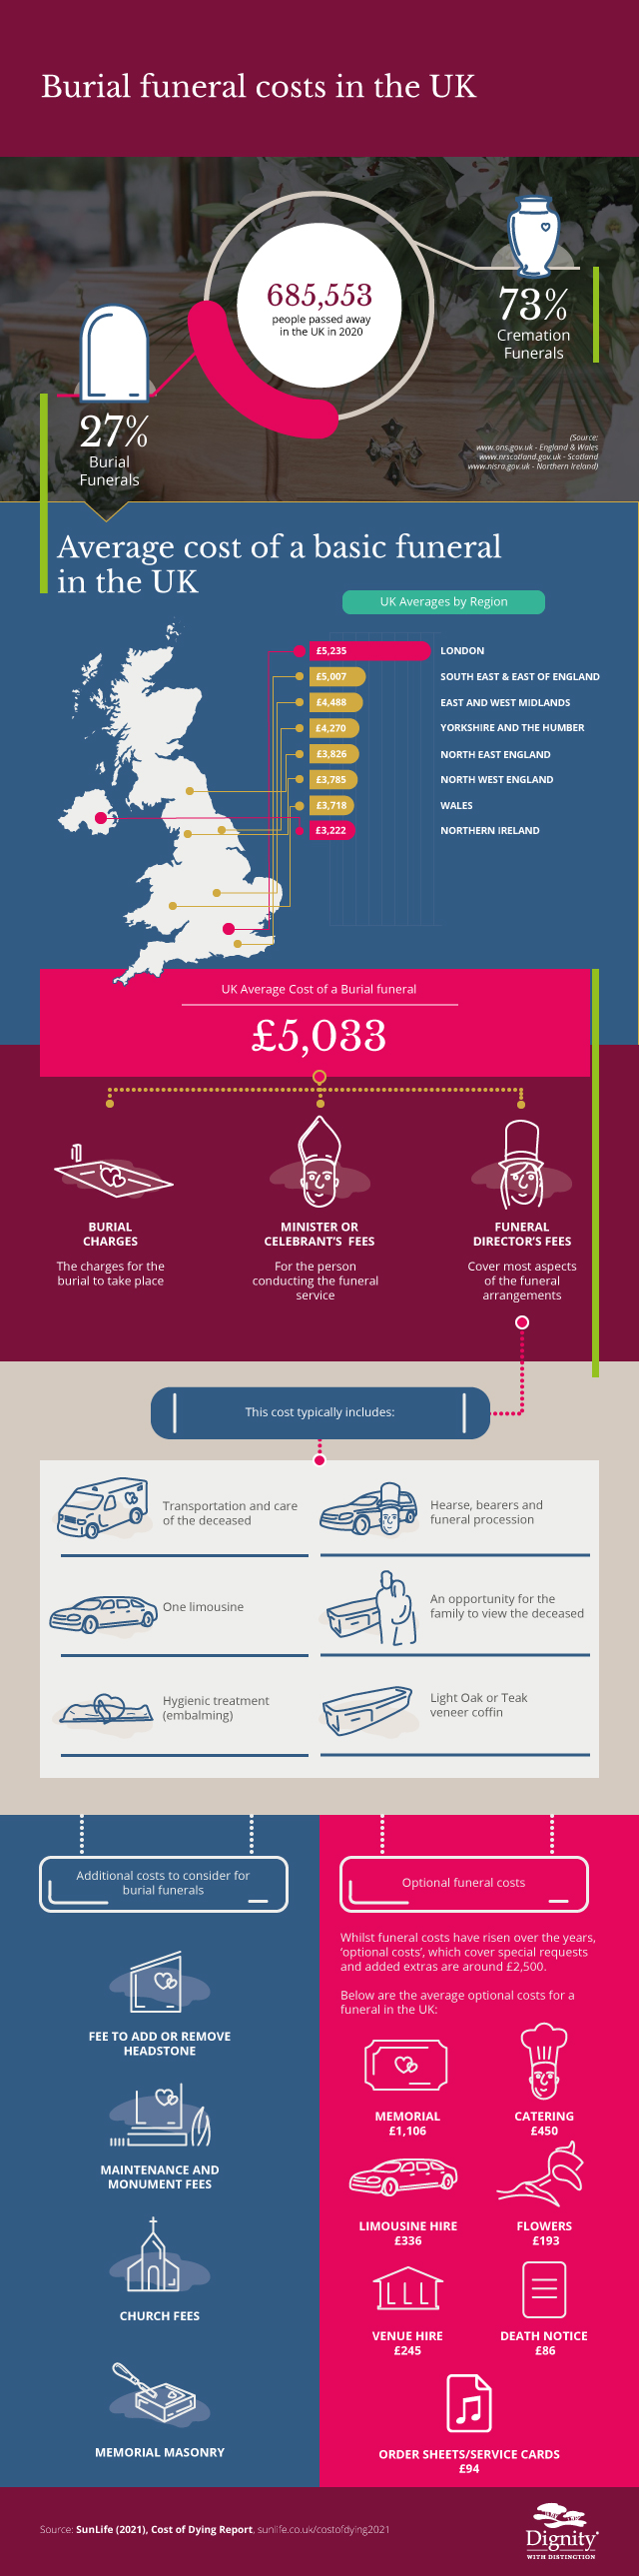 Burial costs in the UK 2020 | Dignity Funerals